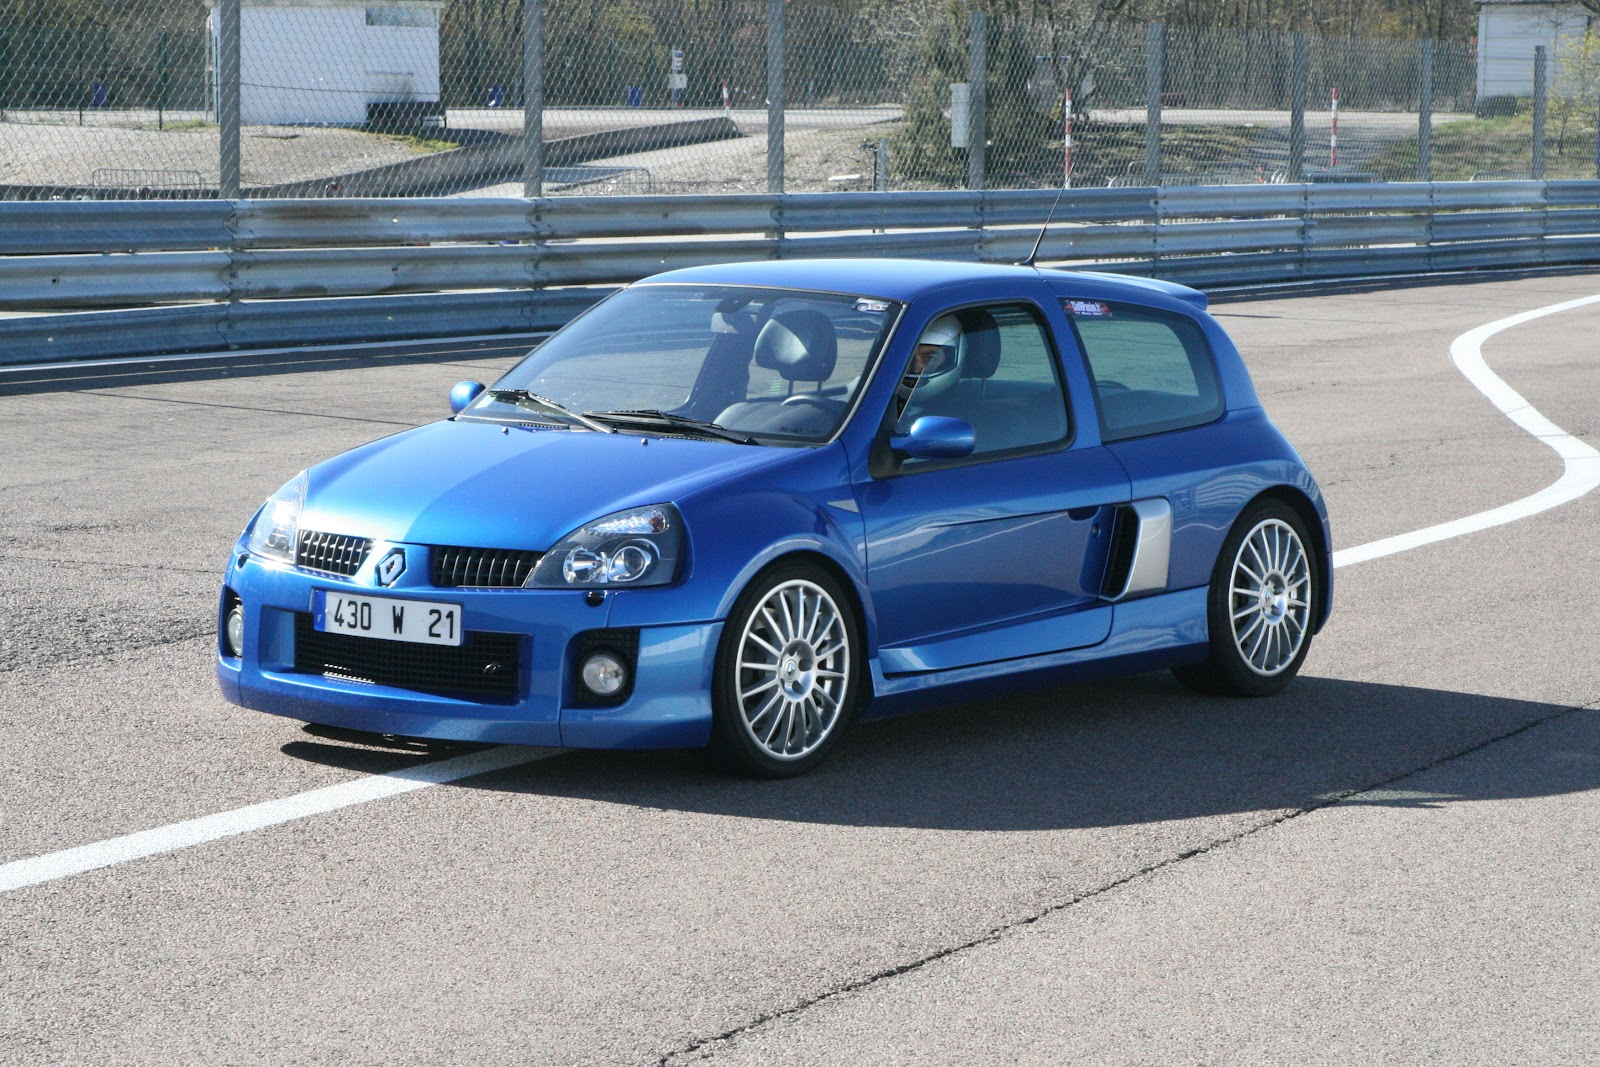 clio v6 occasion annonce vendue renault clio ii rs v6 230ch coup gris clair occasion 40 000 4. Black Bedroom Furniture Sets. Home Design Ideas